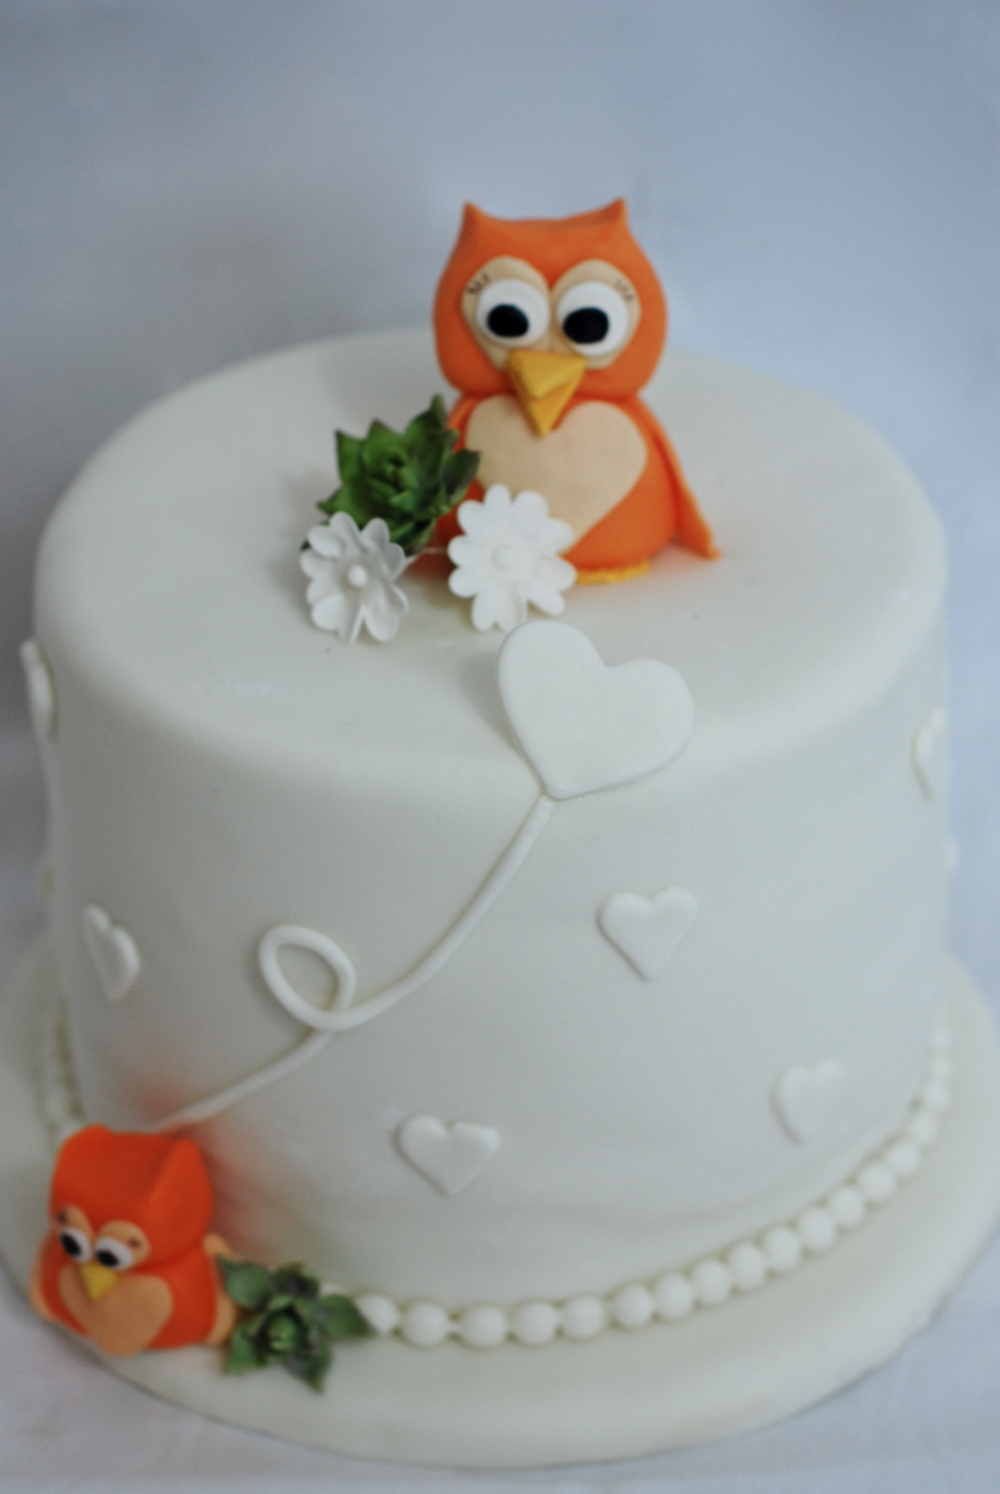 Sweet Fondant Owls and Succulents on this DELICIOUS Pumpkin Spice Cake